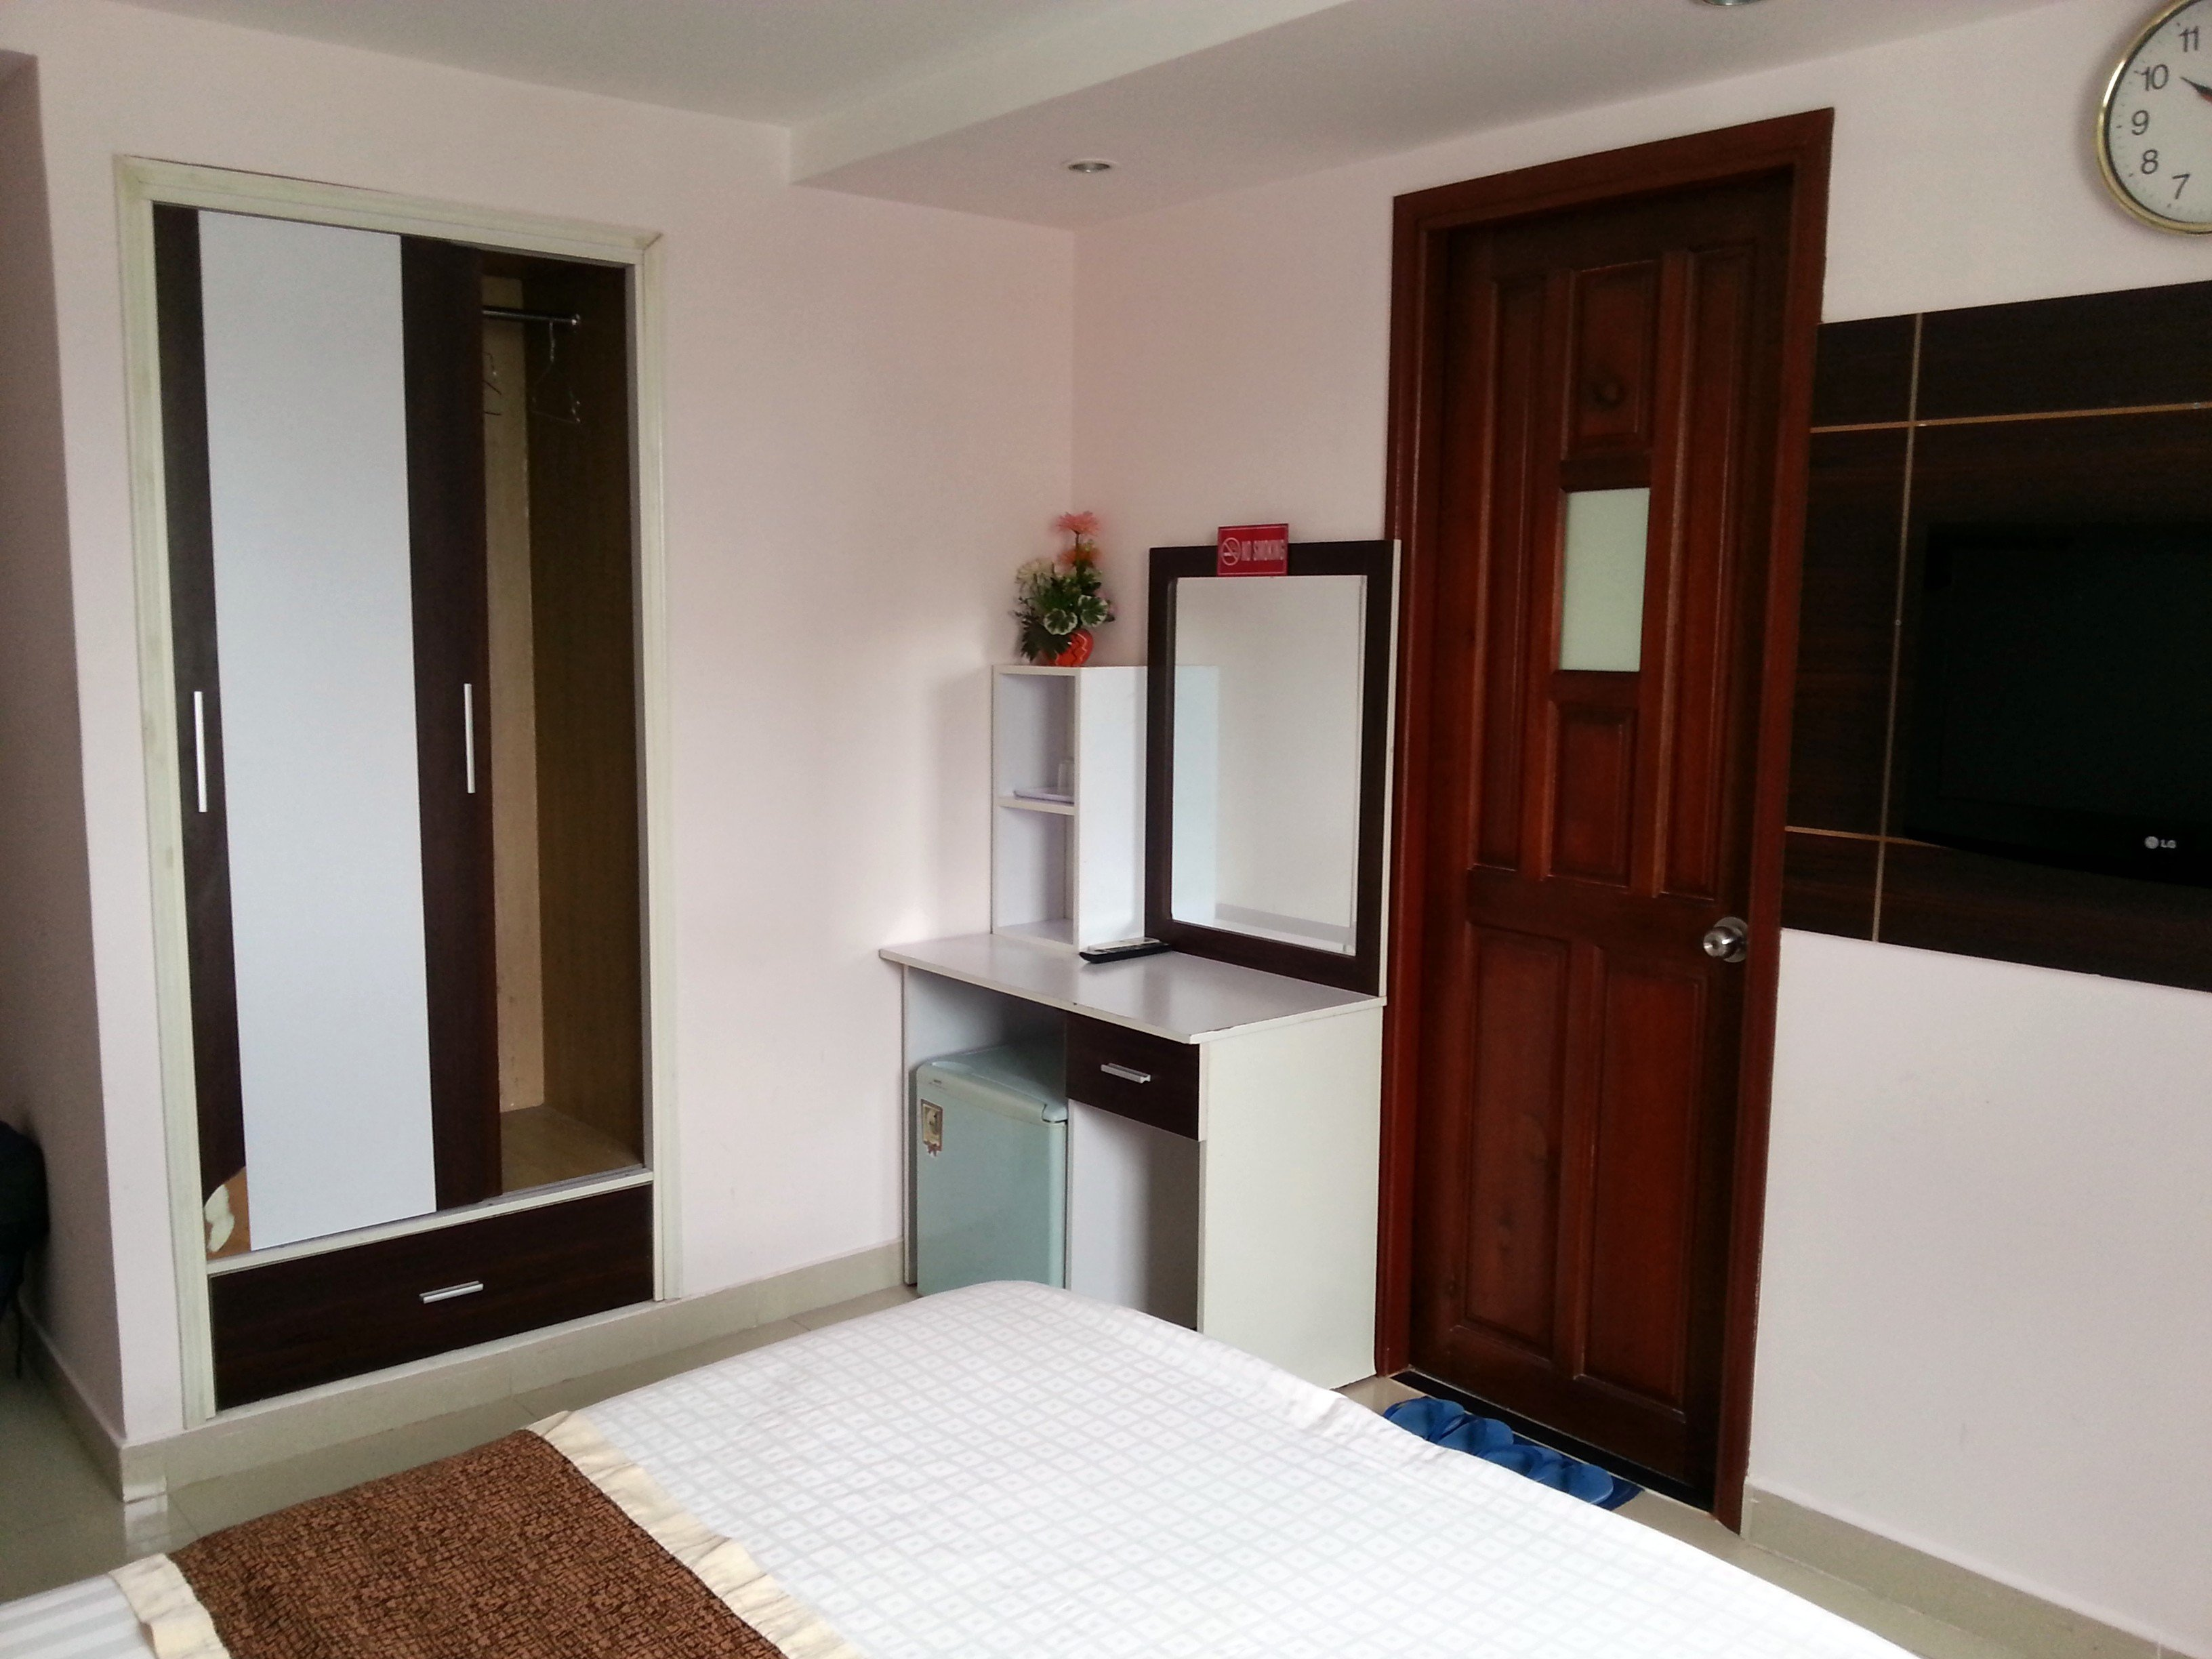 Fridge and wardrobe at the Huong Mai Hotel